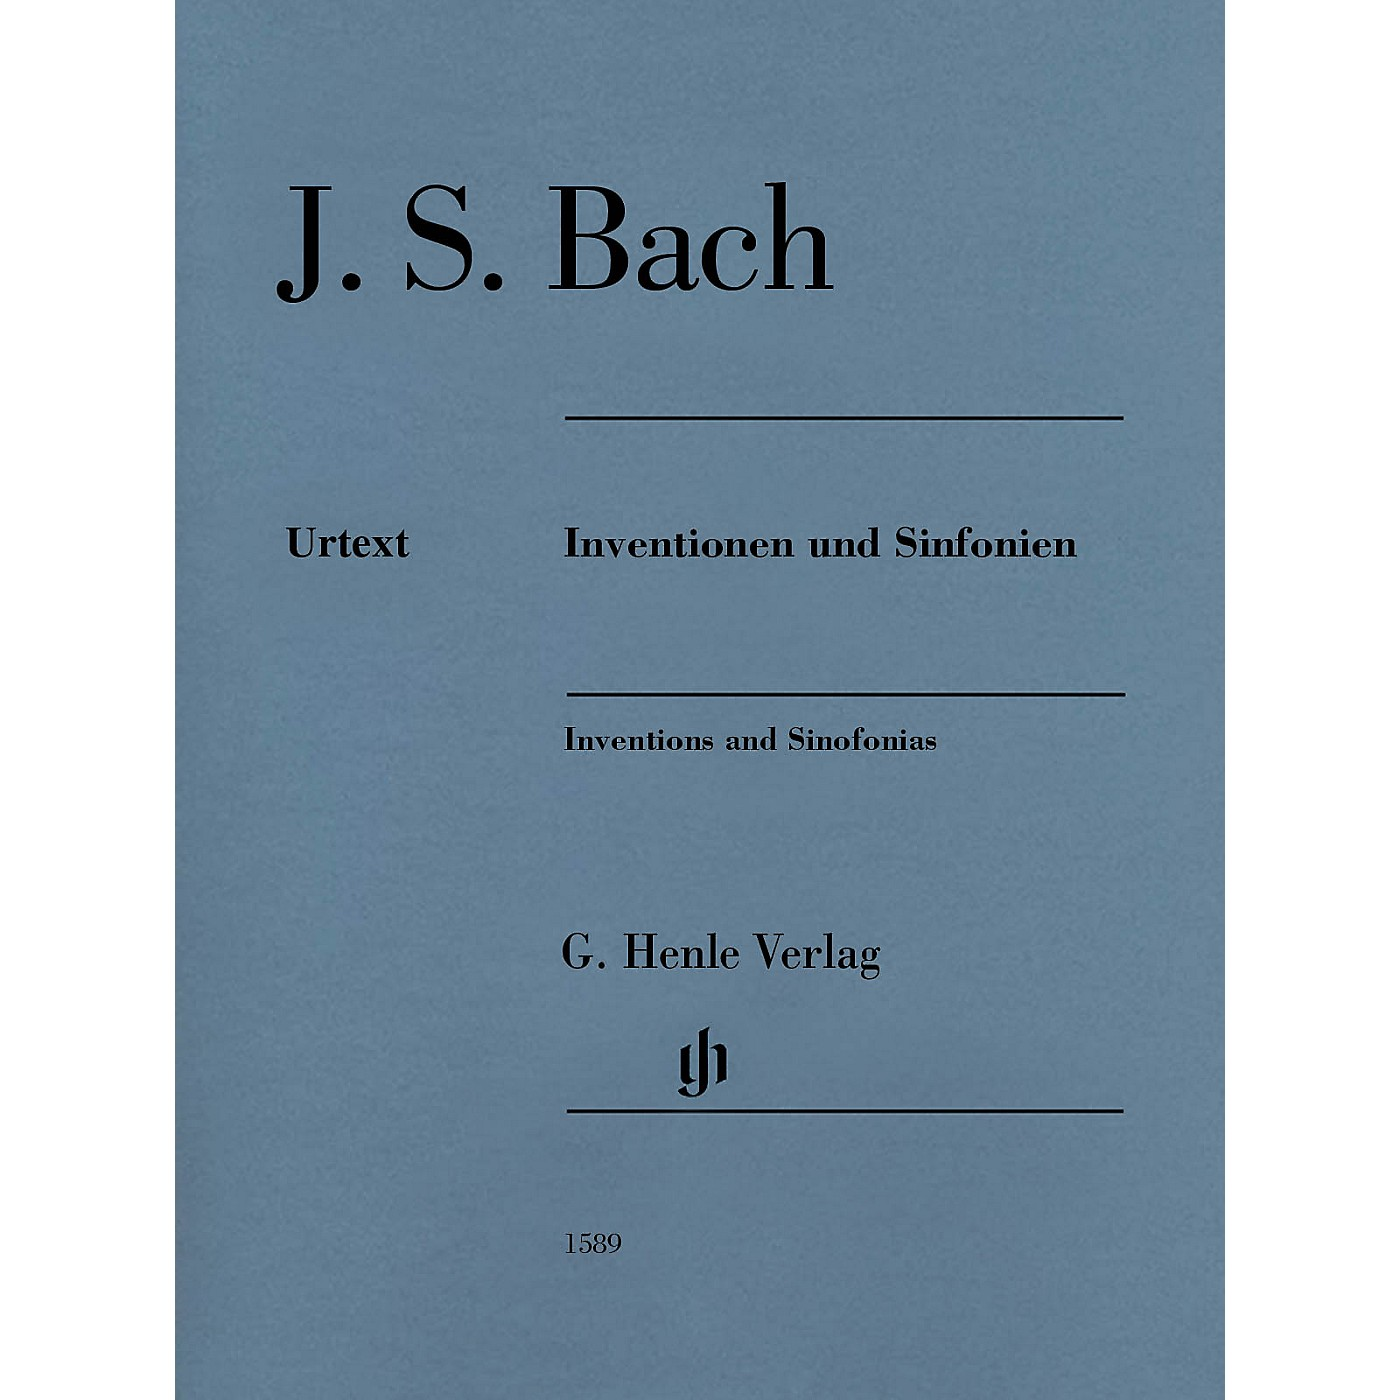 G. Henle Verlag Inventions and Sinfonias Henle Music Folios Series Softcover thumbnail